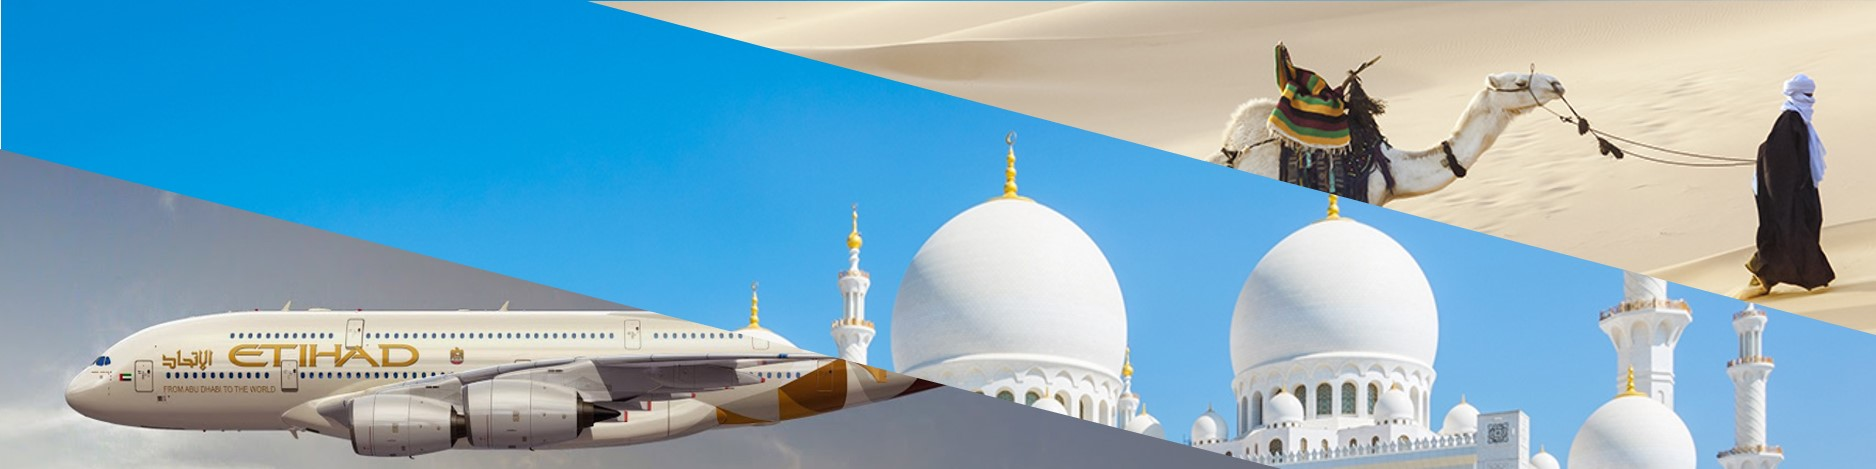 Etihad A380 with the Sheikh Zayed Mosque and camels in the desert near Abu Dhabi